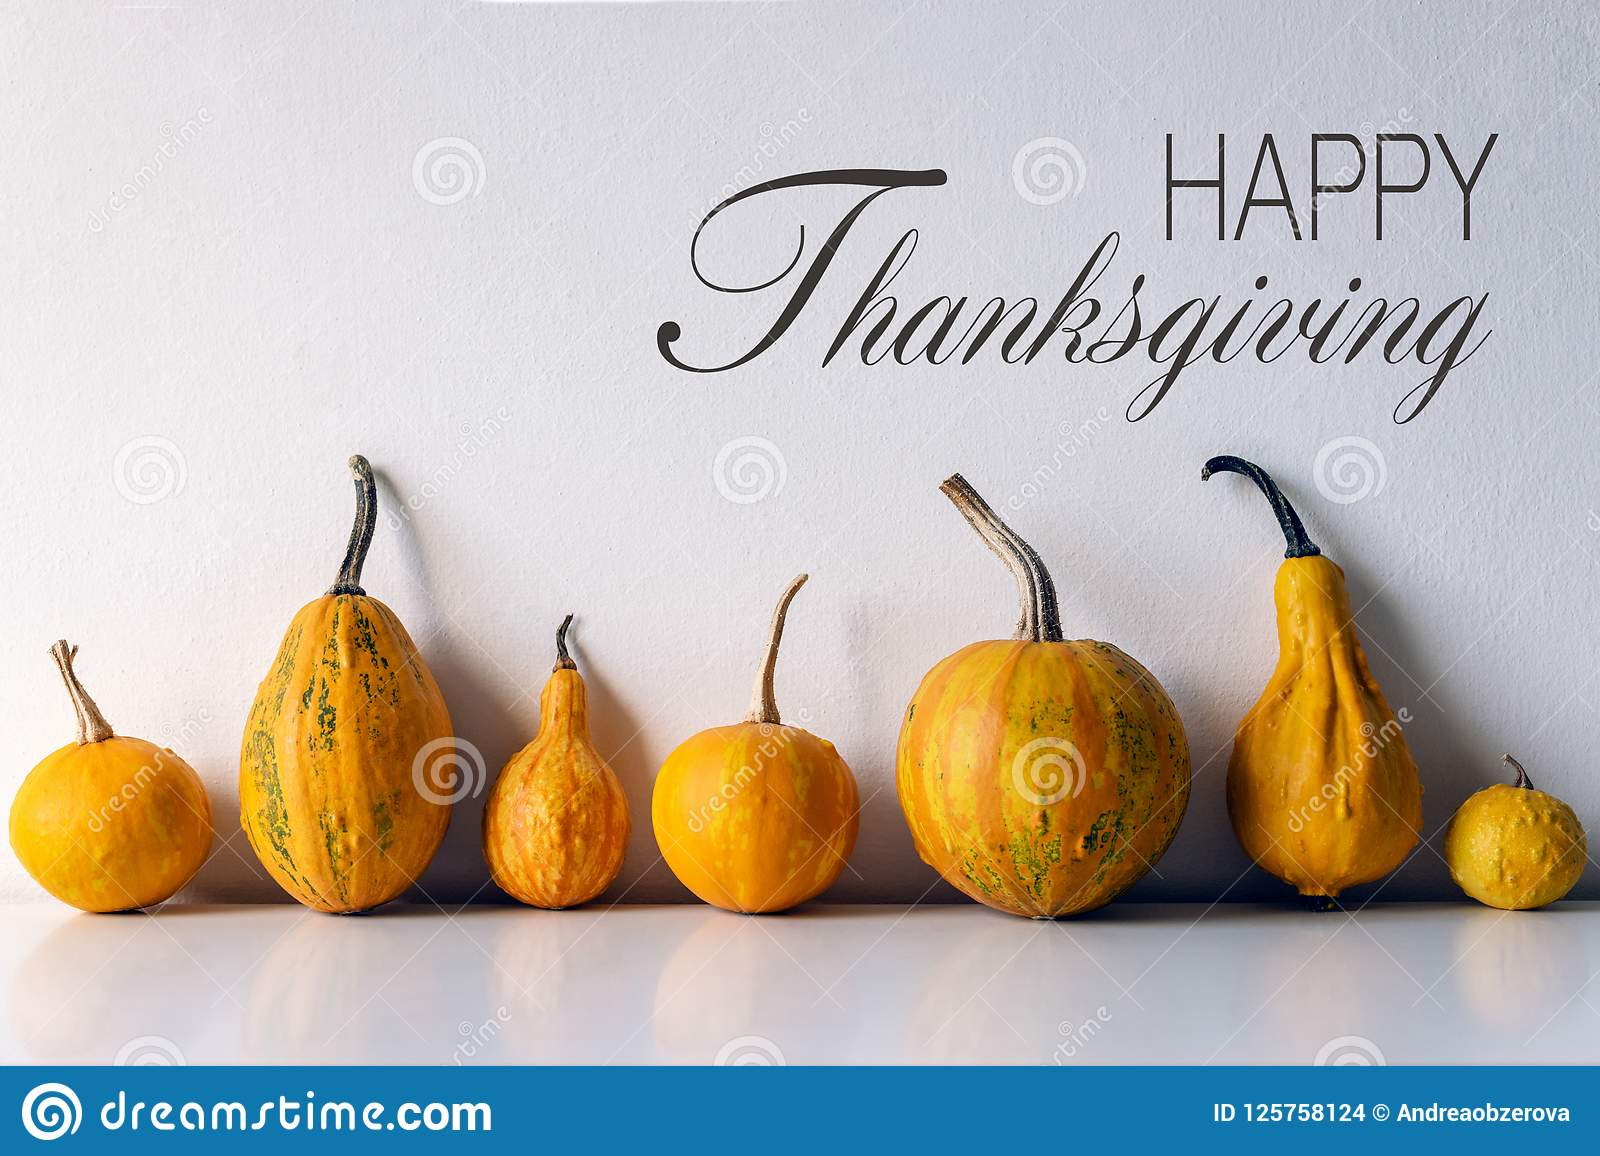 4 702 Thanksgiving Wall Photos Free Royalty Free Stock Photos From Dreamstime